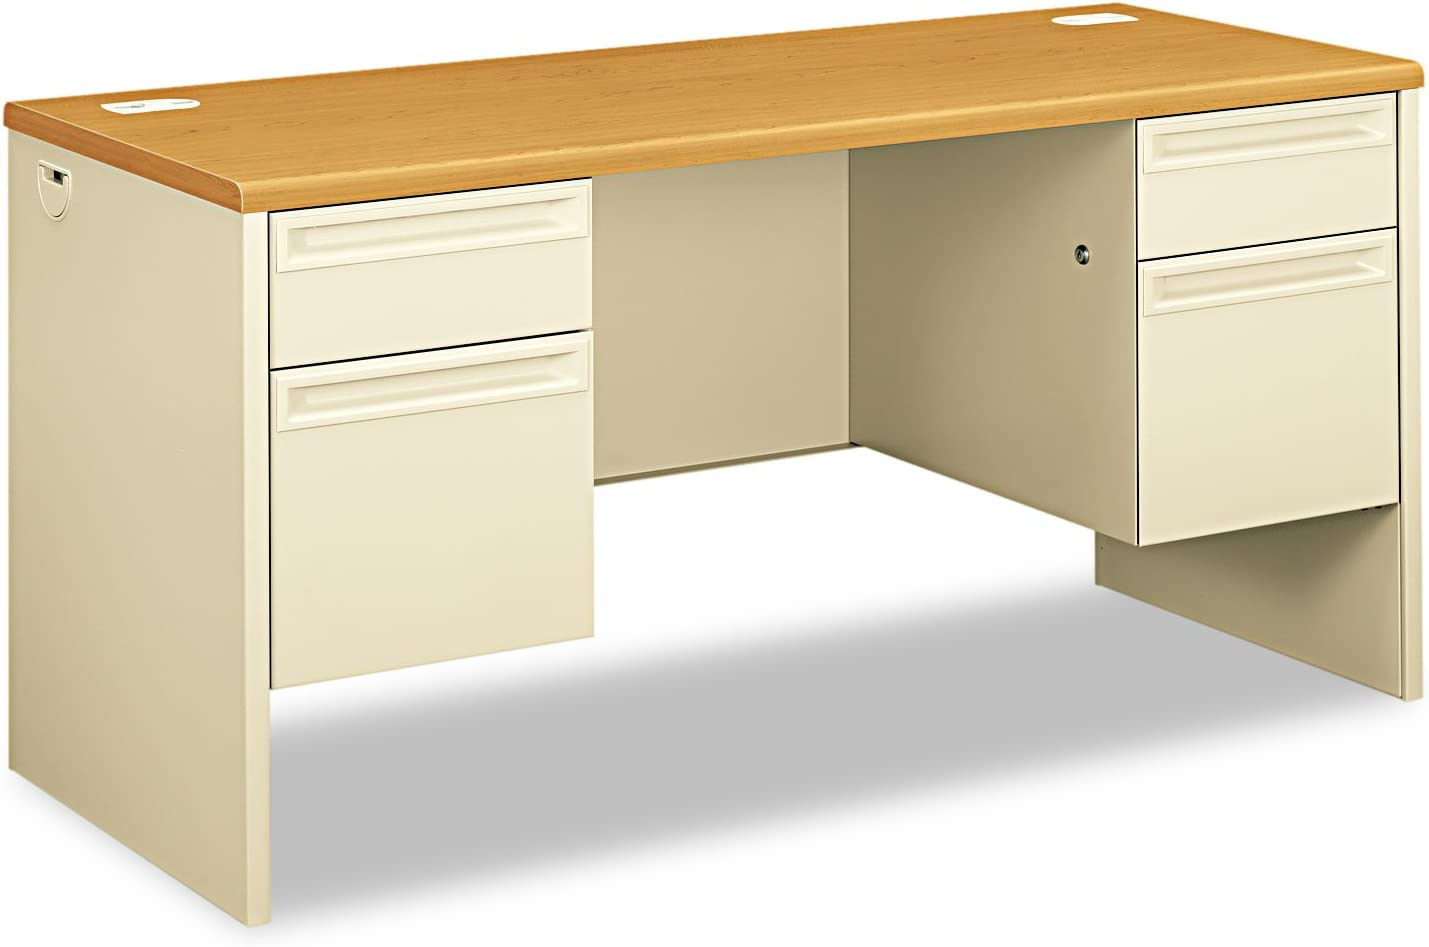 Very popular! HON 38852CL 38000 Series sold out Kneespace Credenza 2h x 60w 29-1 24d